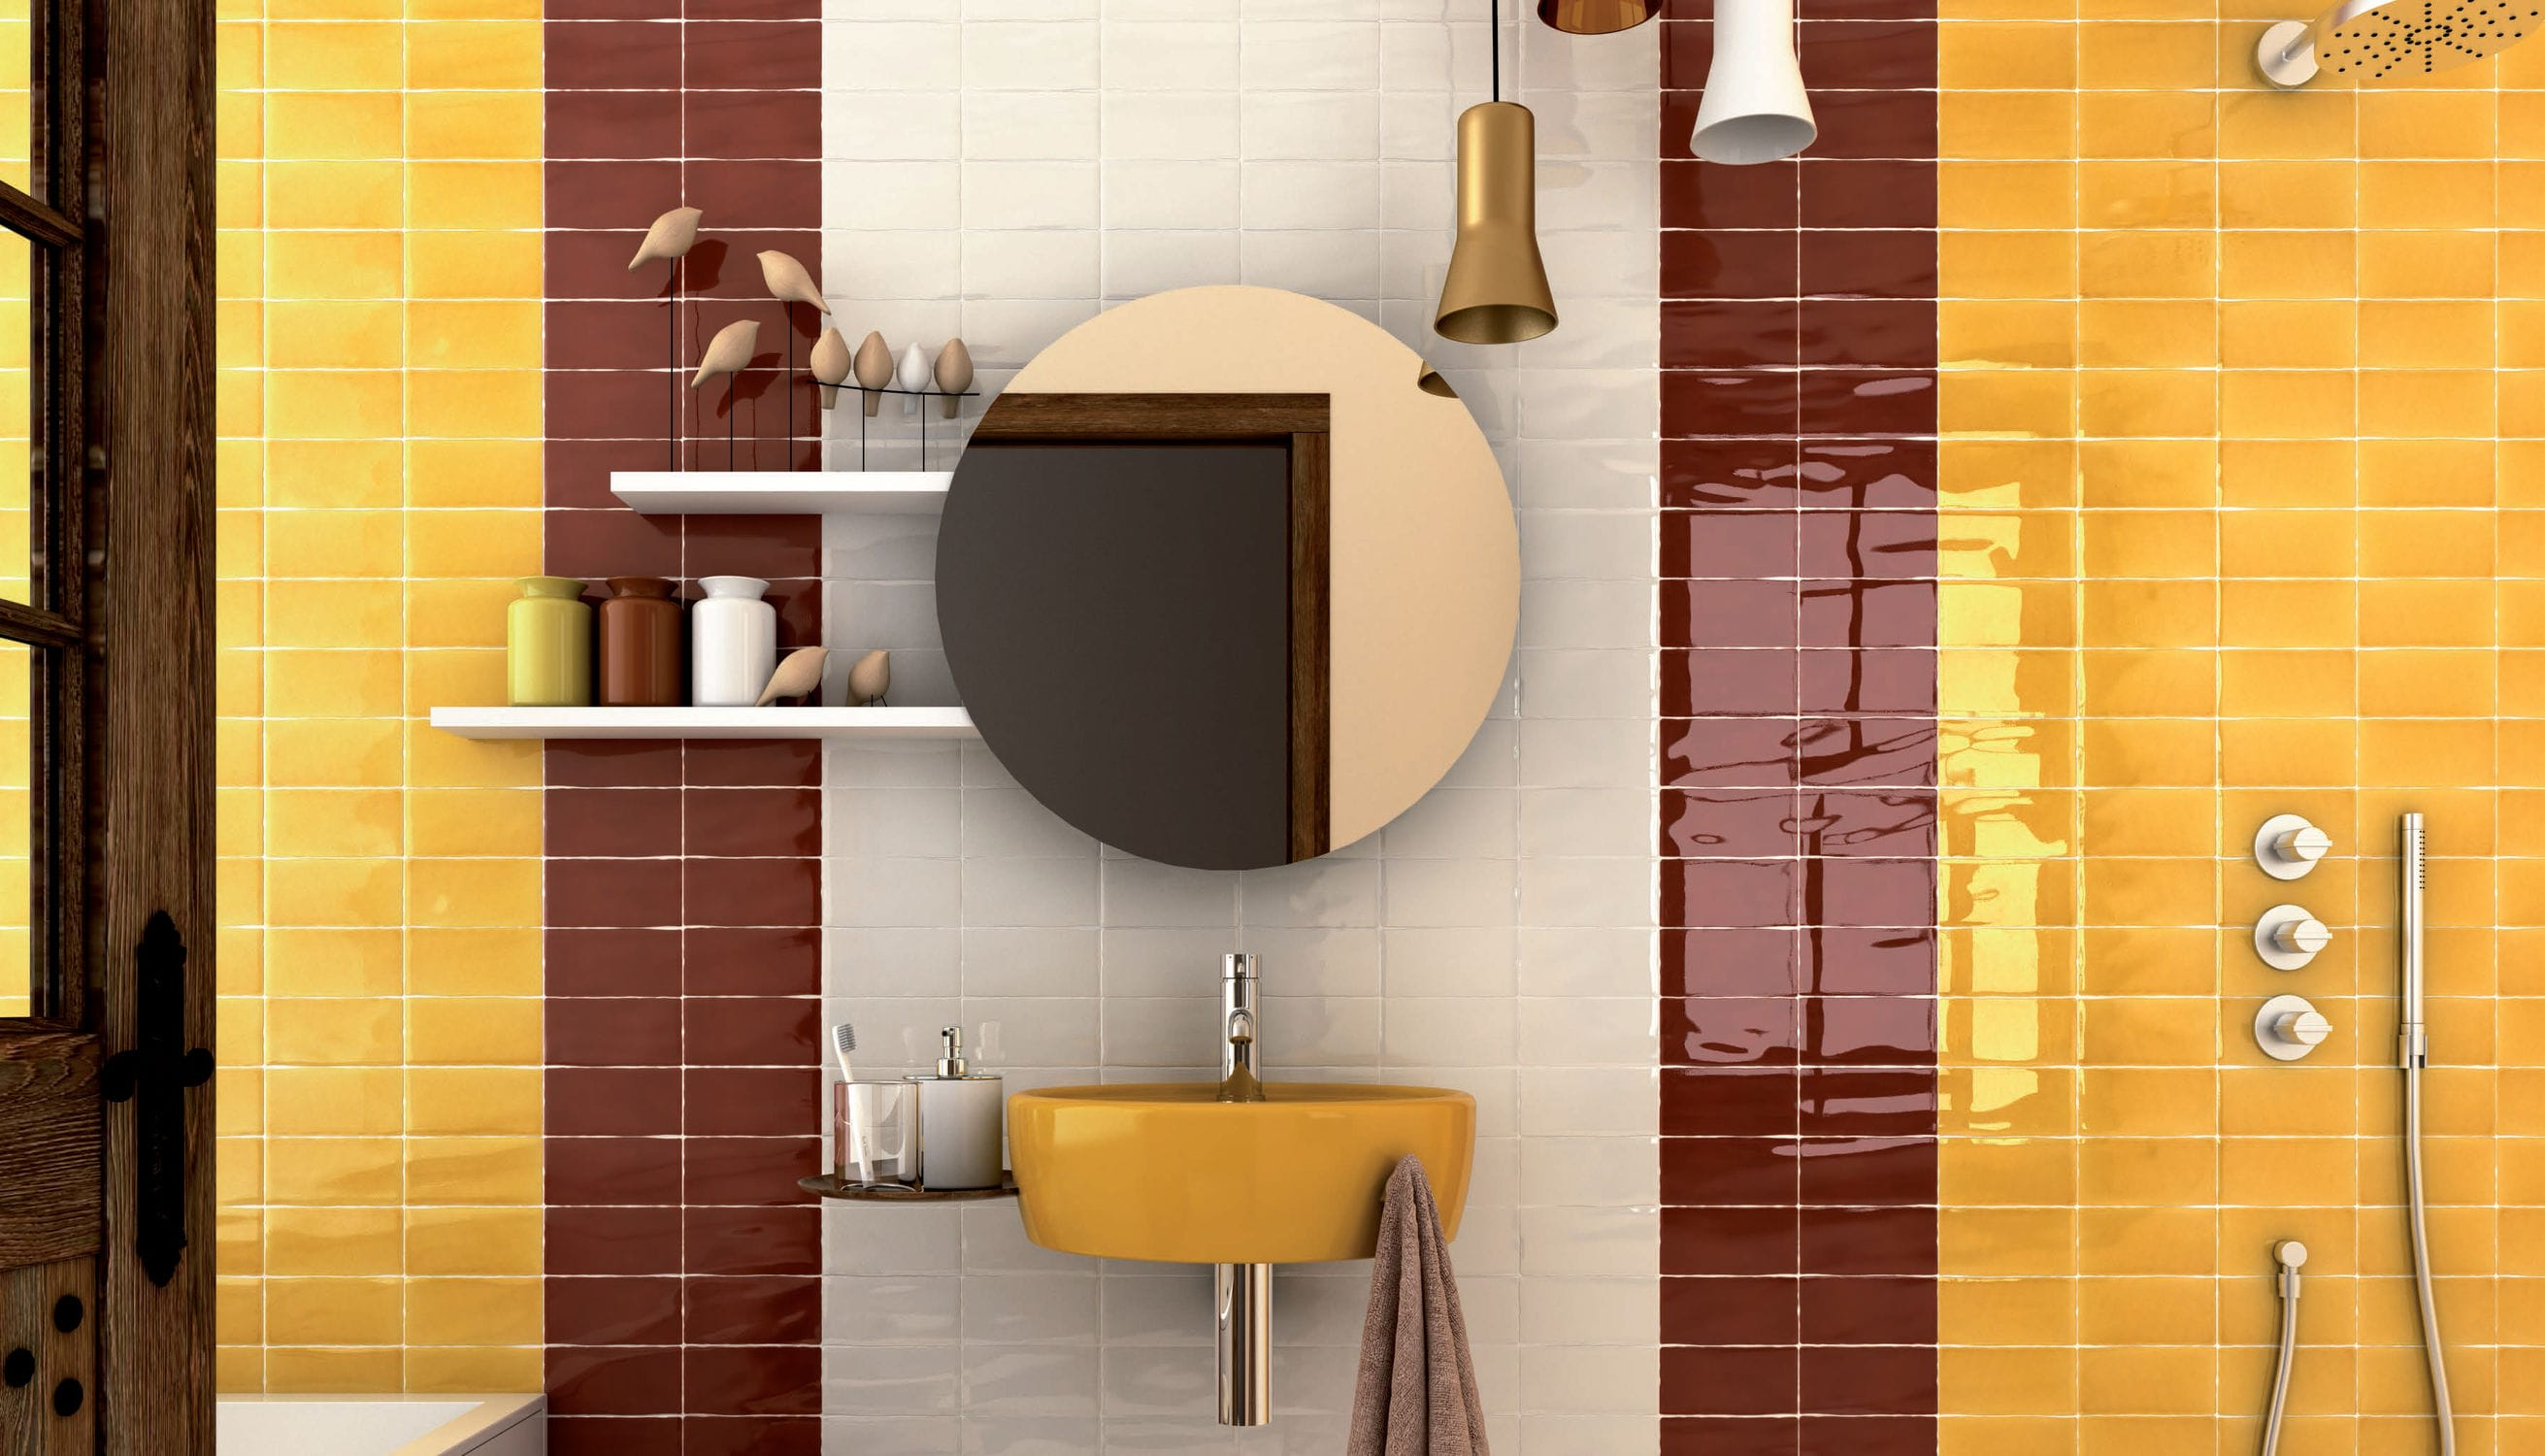 Bathroom Tile / Kitchen / Wall / Ceramic ...